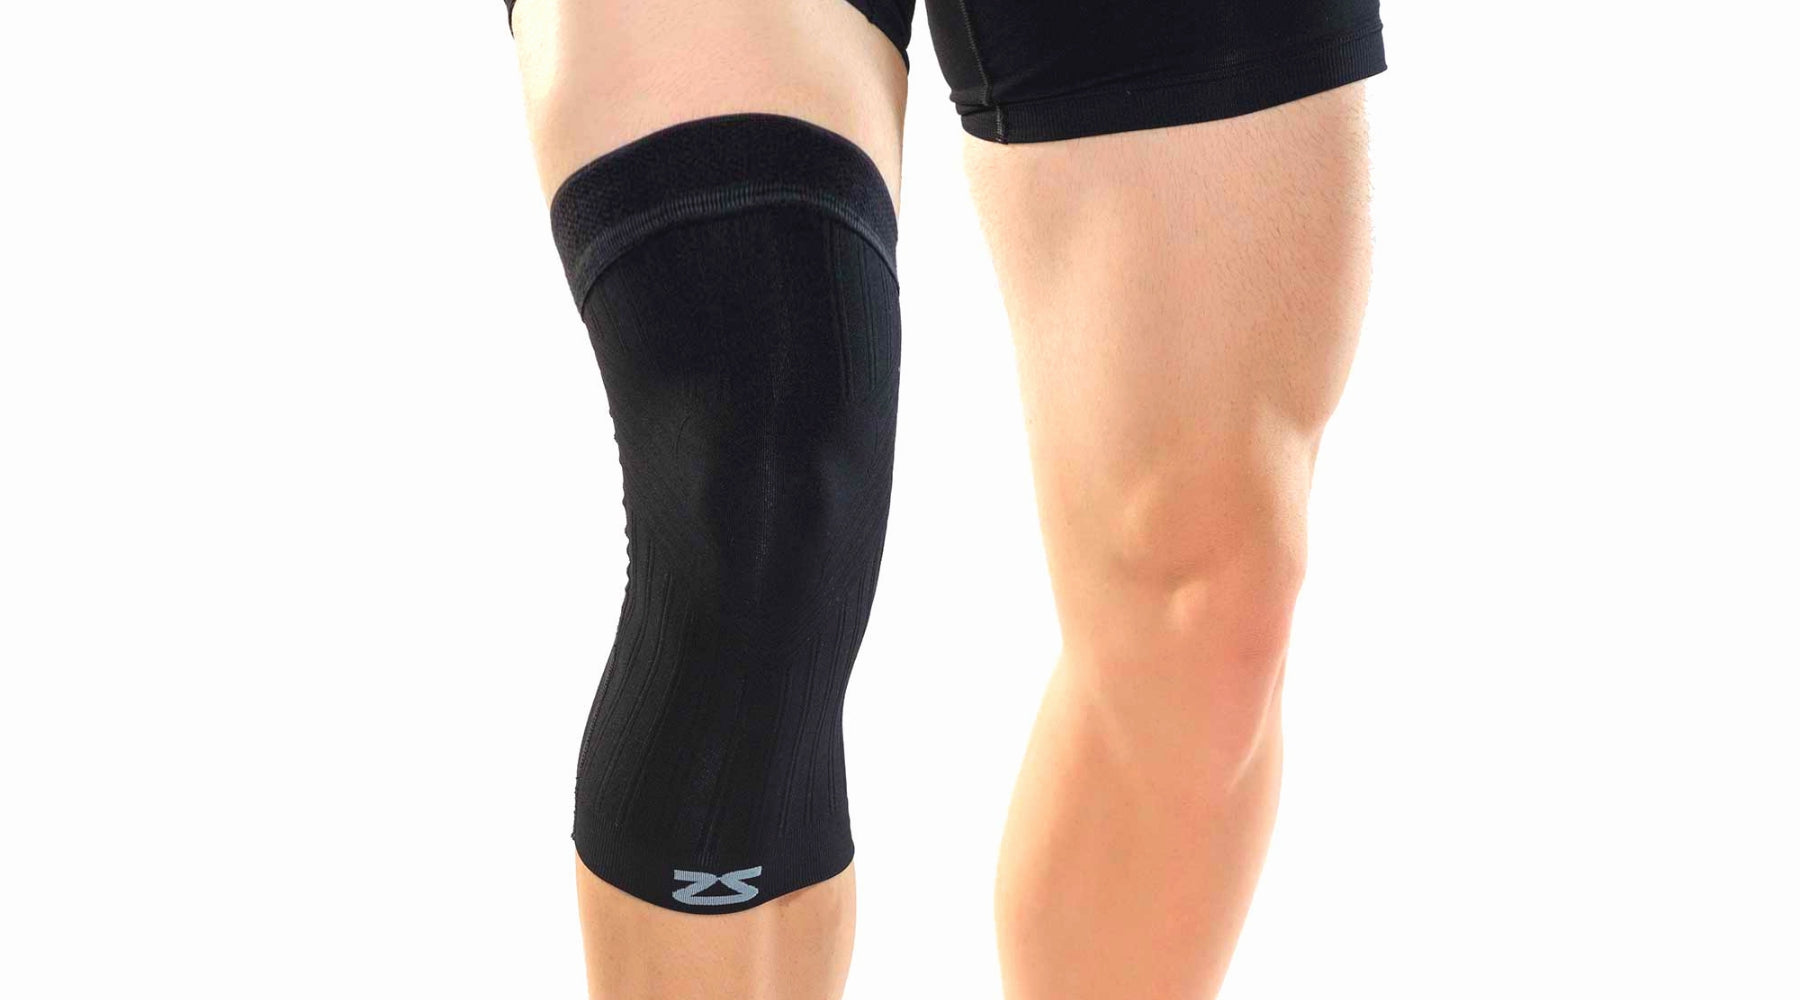 What Are The Benefits of Compression Knee Sleeves ?